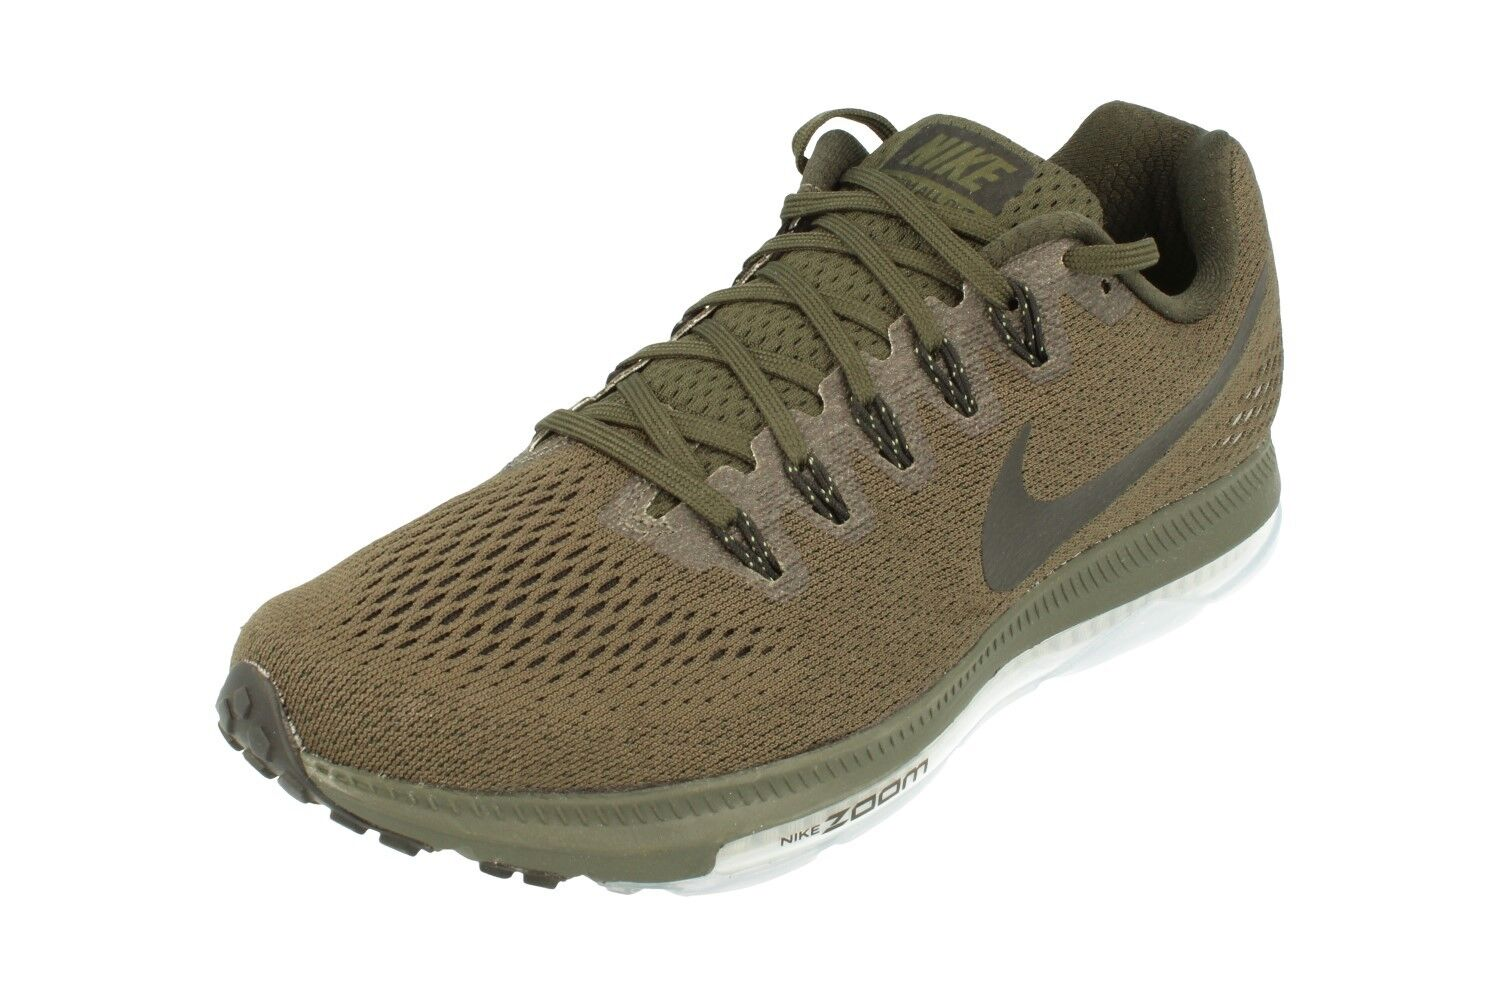 Nike Trainers Zoom All Out faible homme fonctionnement Trainers Nike 878670 Baskets chaussures 301 57f5a8